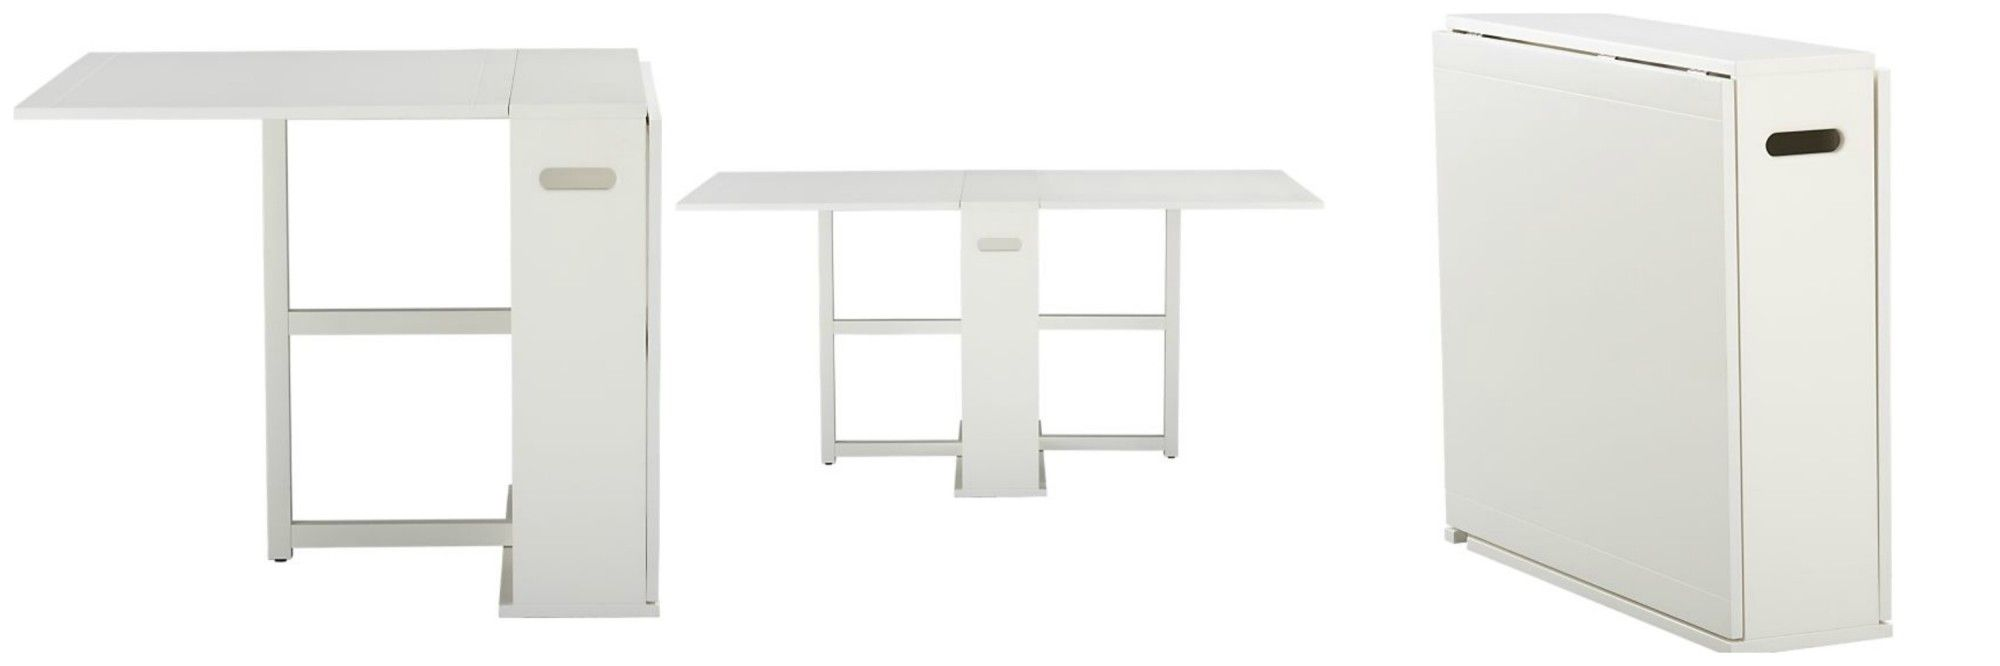 Decor look alikes crate and barrel span gateleg dining table